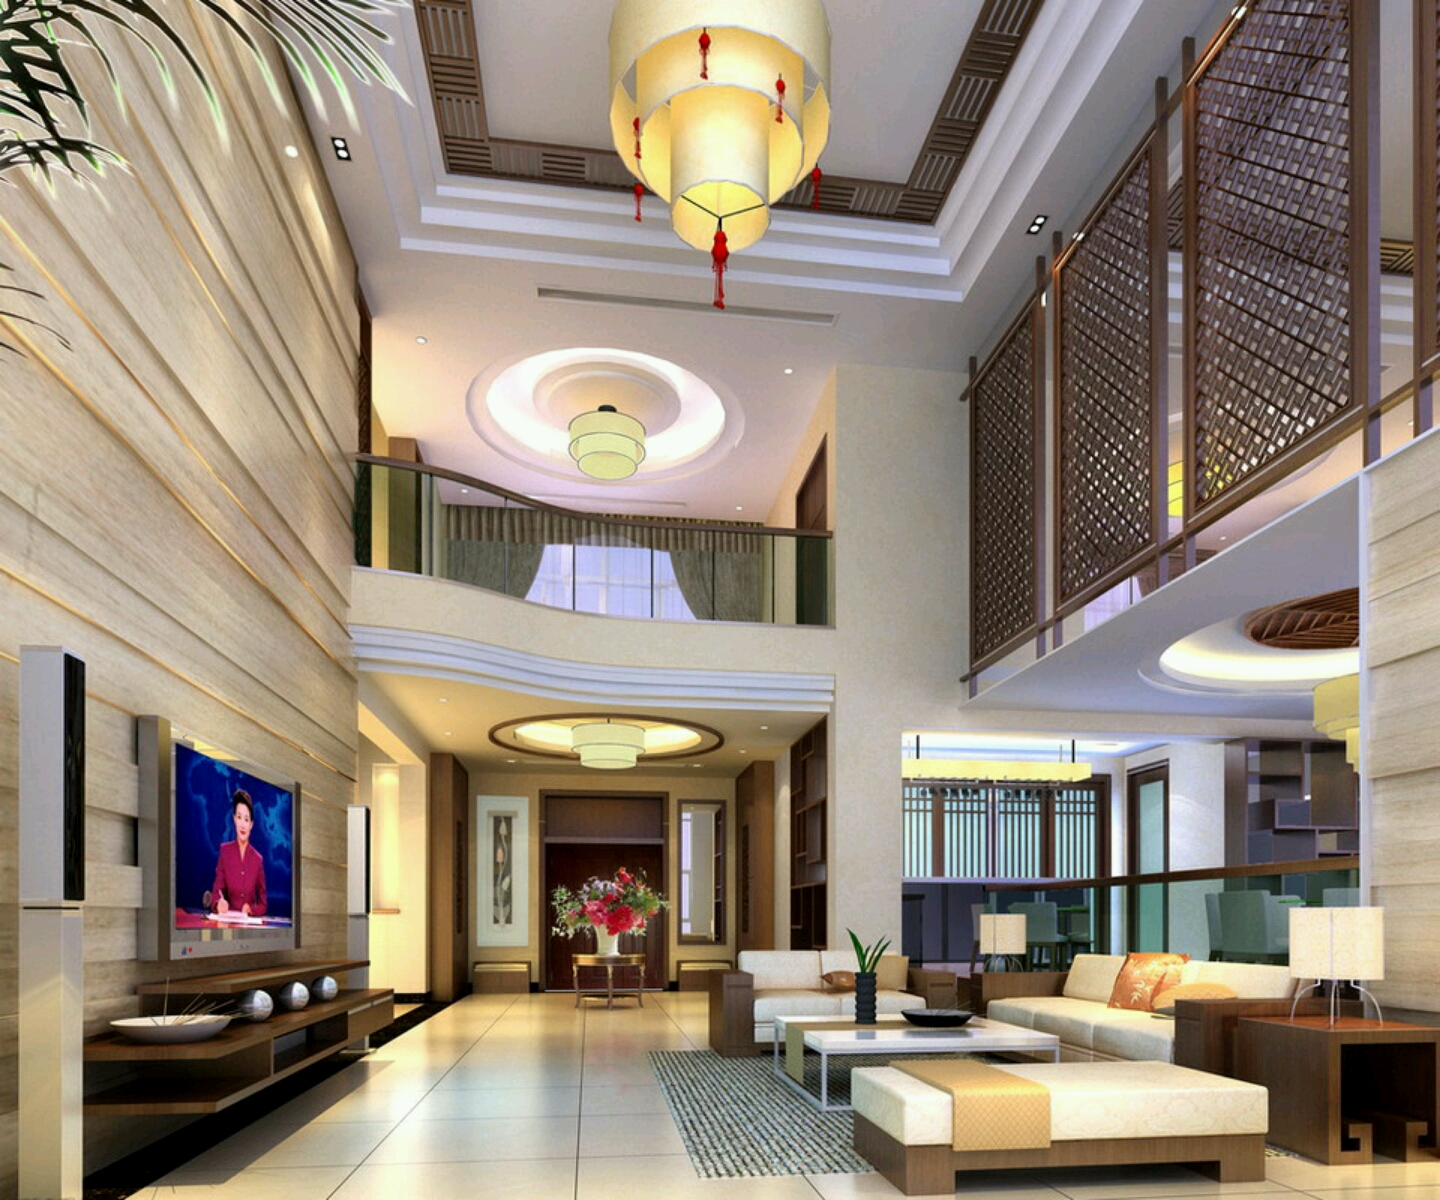 New home designs latest. Ultra Modern living rooms interior designs decoration ideas.